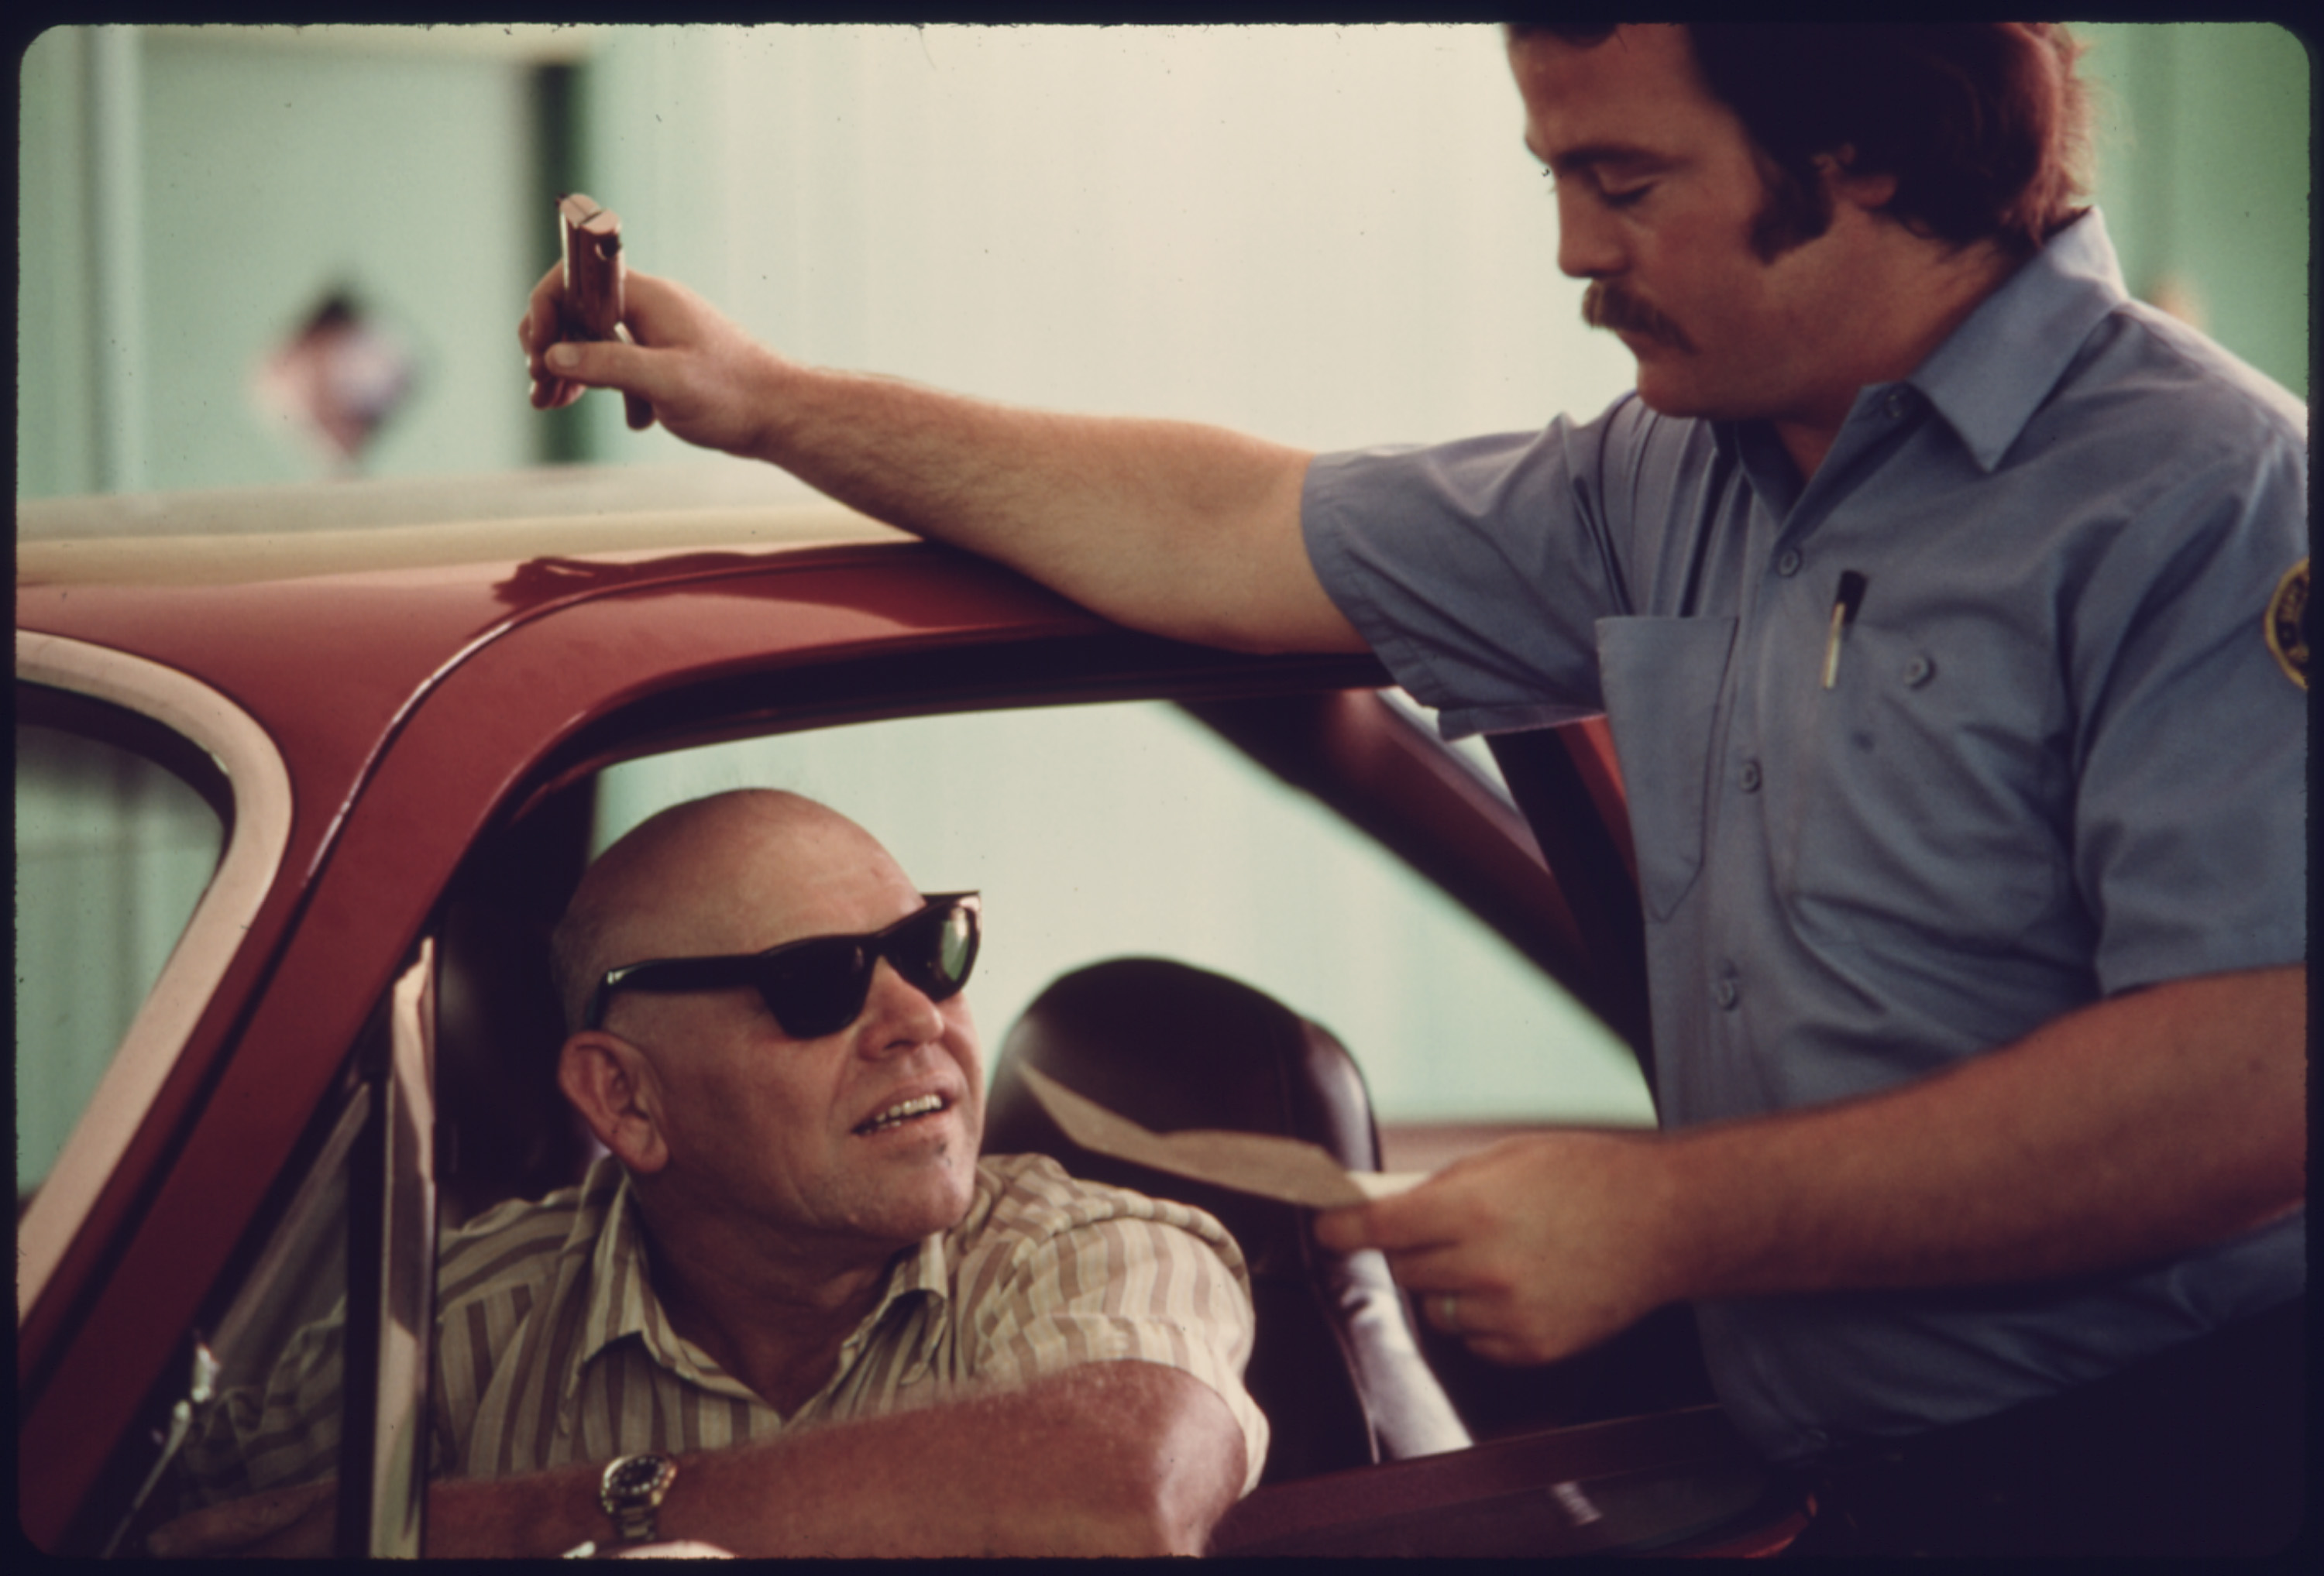 Motorist and Public Works Department Employee Discuss the Results of the Car's Performance after Testing at an Auto Emission Inspection Station in Norwood, Ohio...08/1975